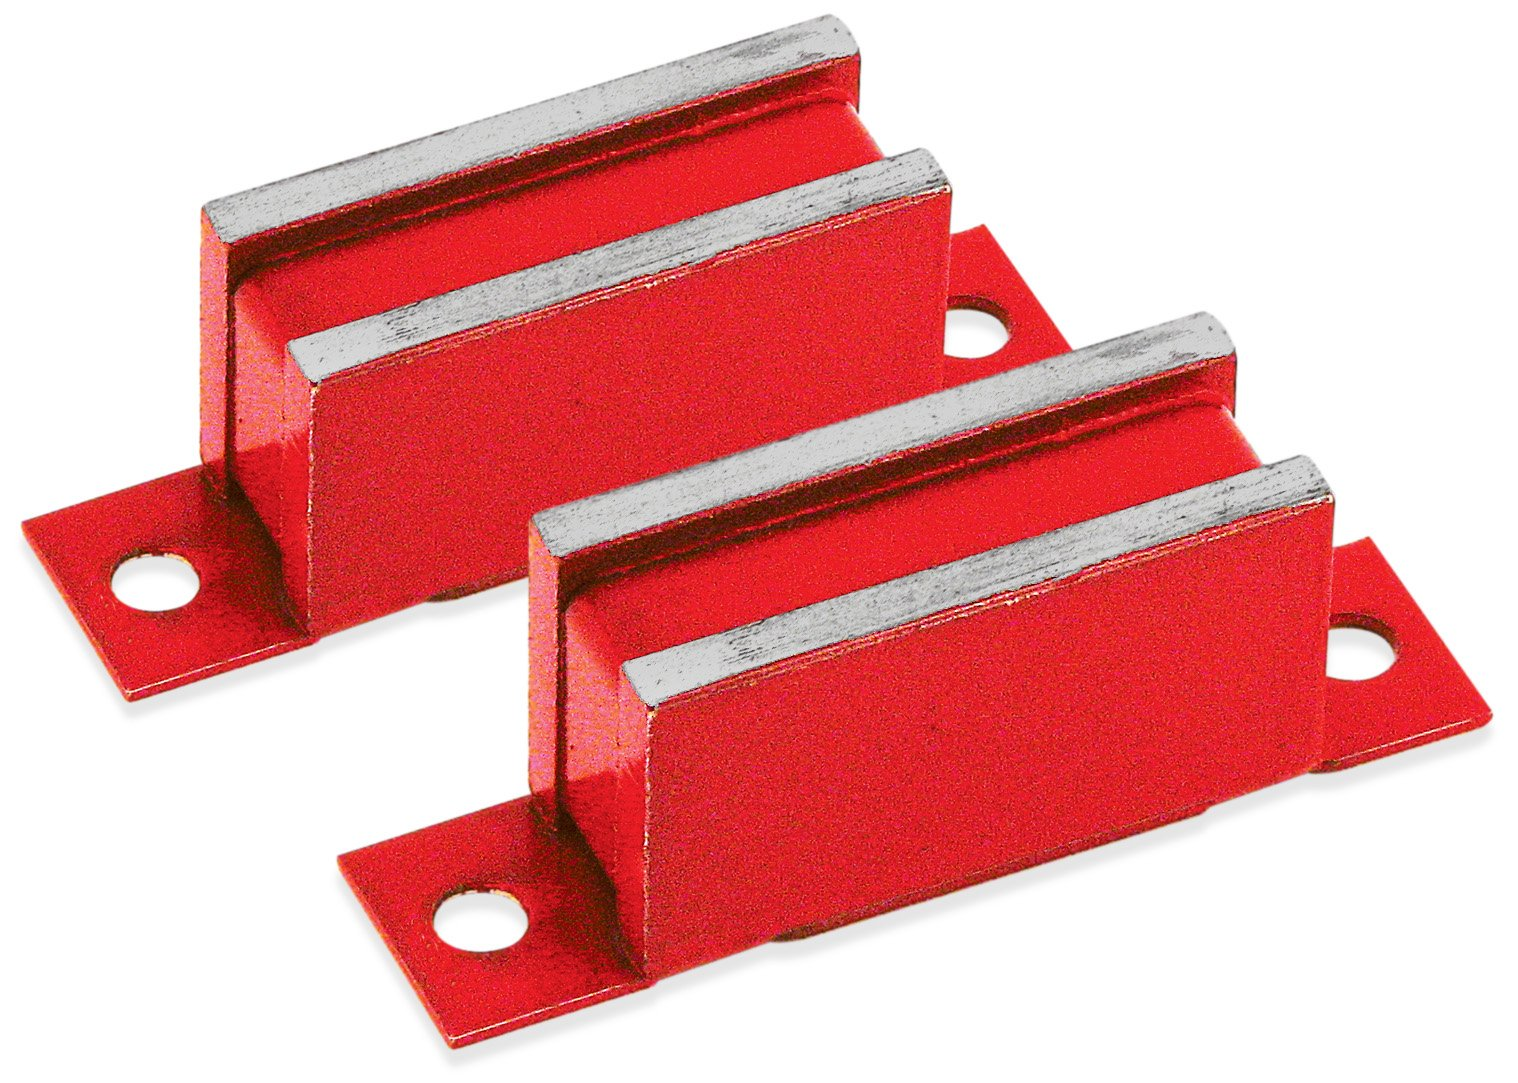 Master Magnetics LM-50BX2 Magnet Catch, Industrial Type with Mounting Holes Painted Red, 3'' Length, 0.75'' Width, 1.062'' Height, 50 Pounds (Pack of 2)